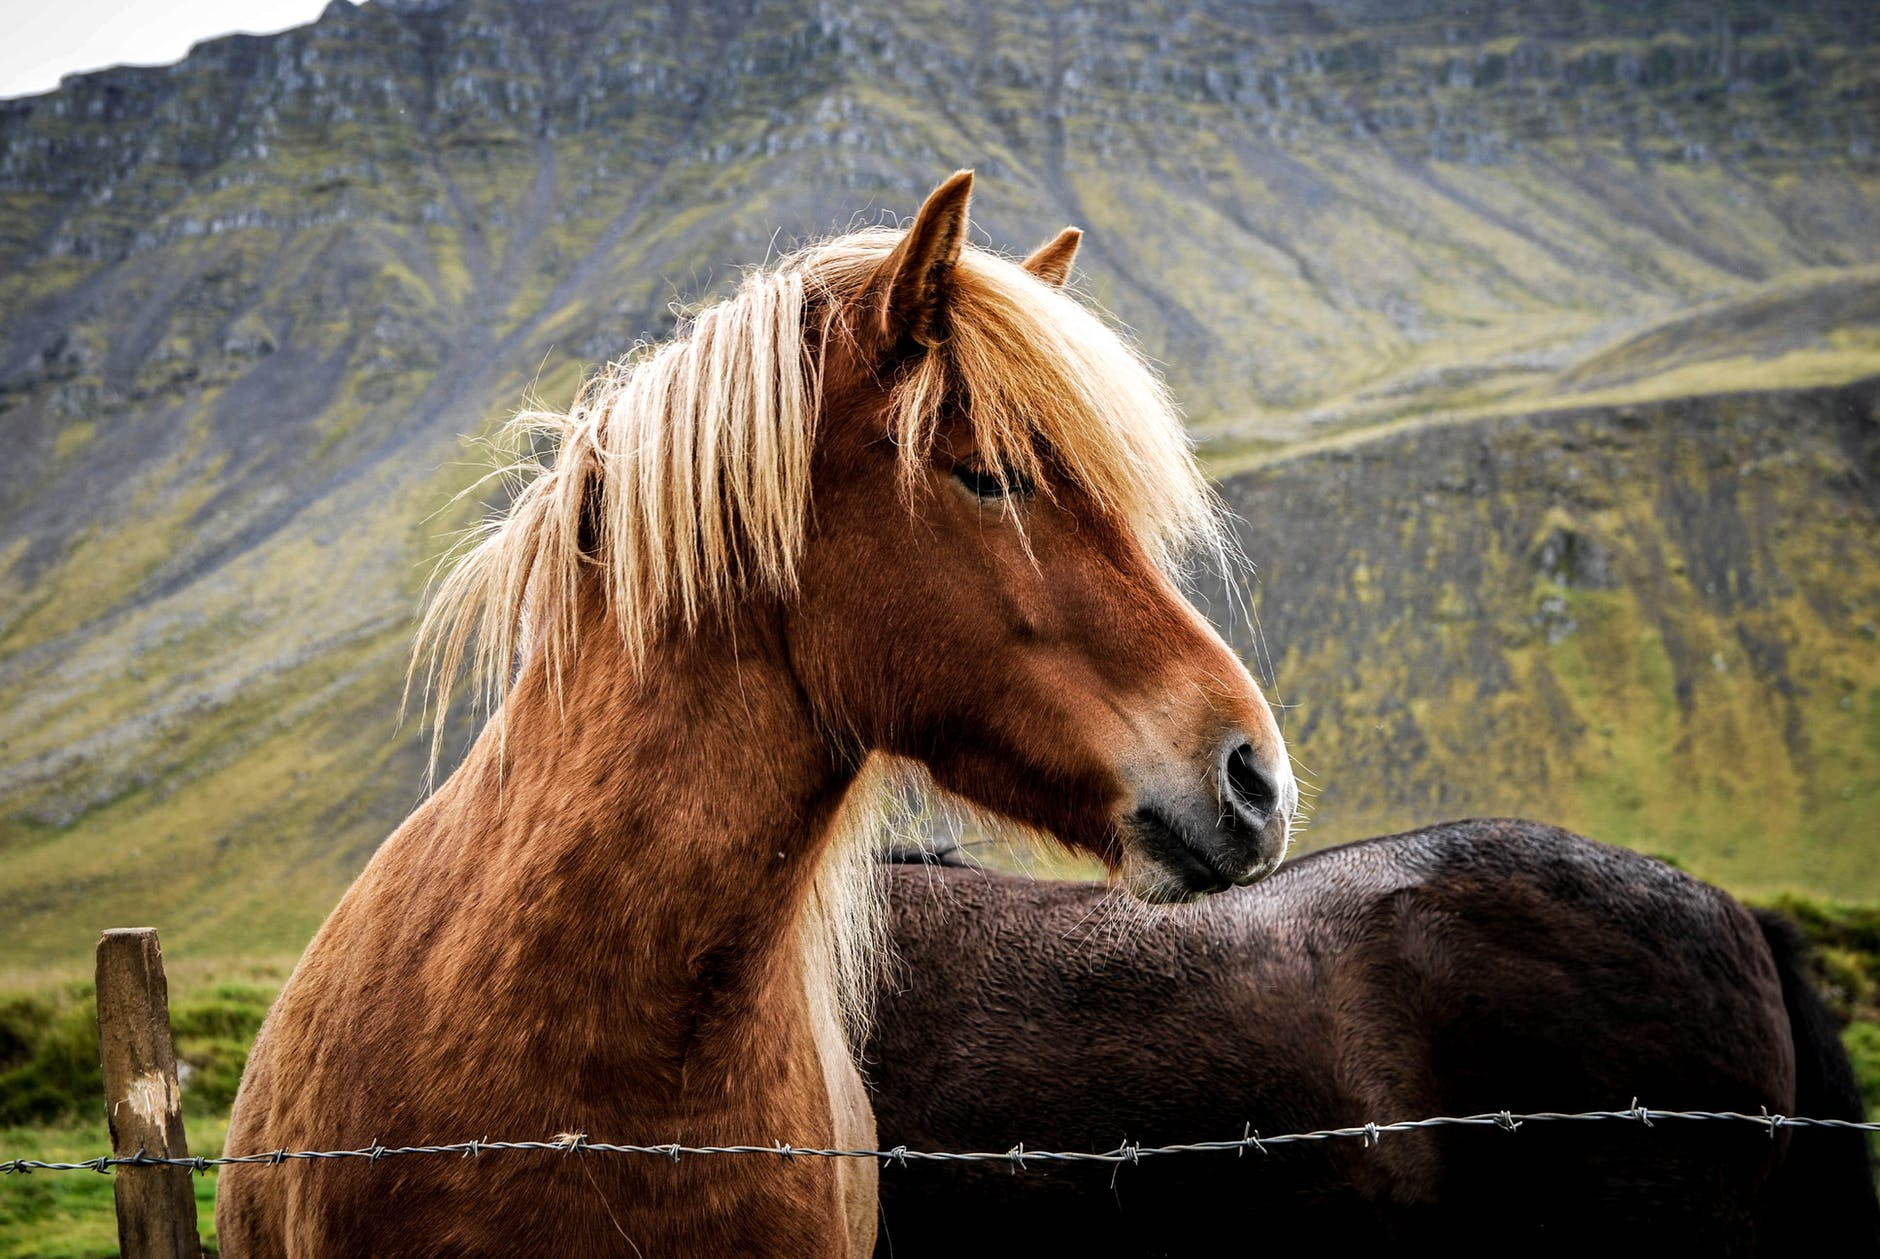 two horse inside the bob wire fences